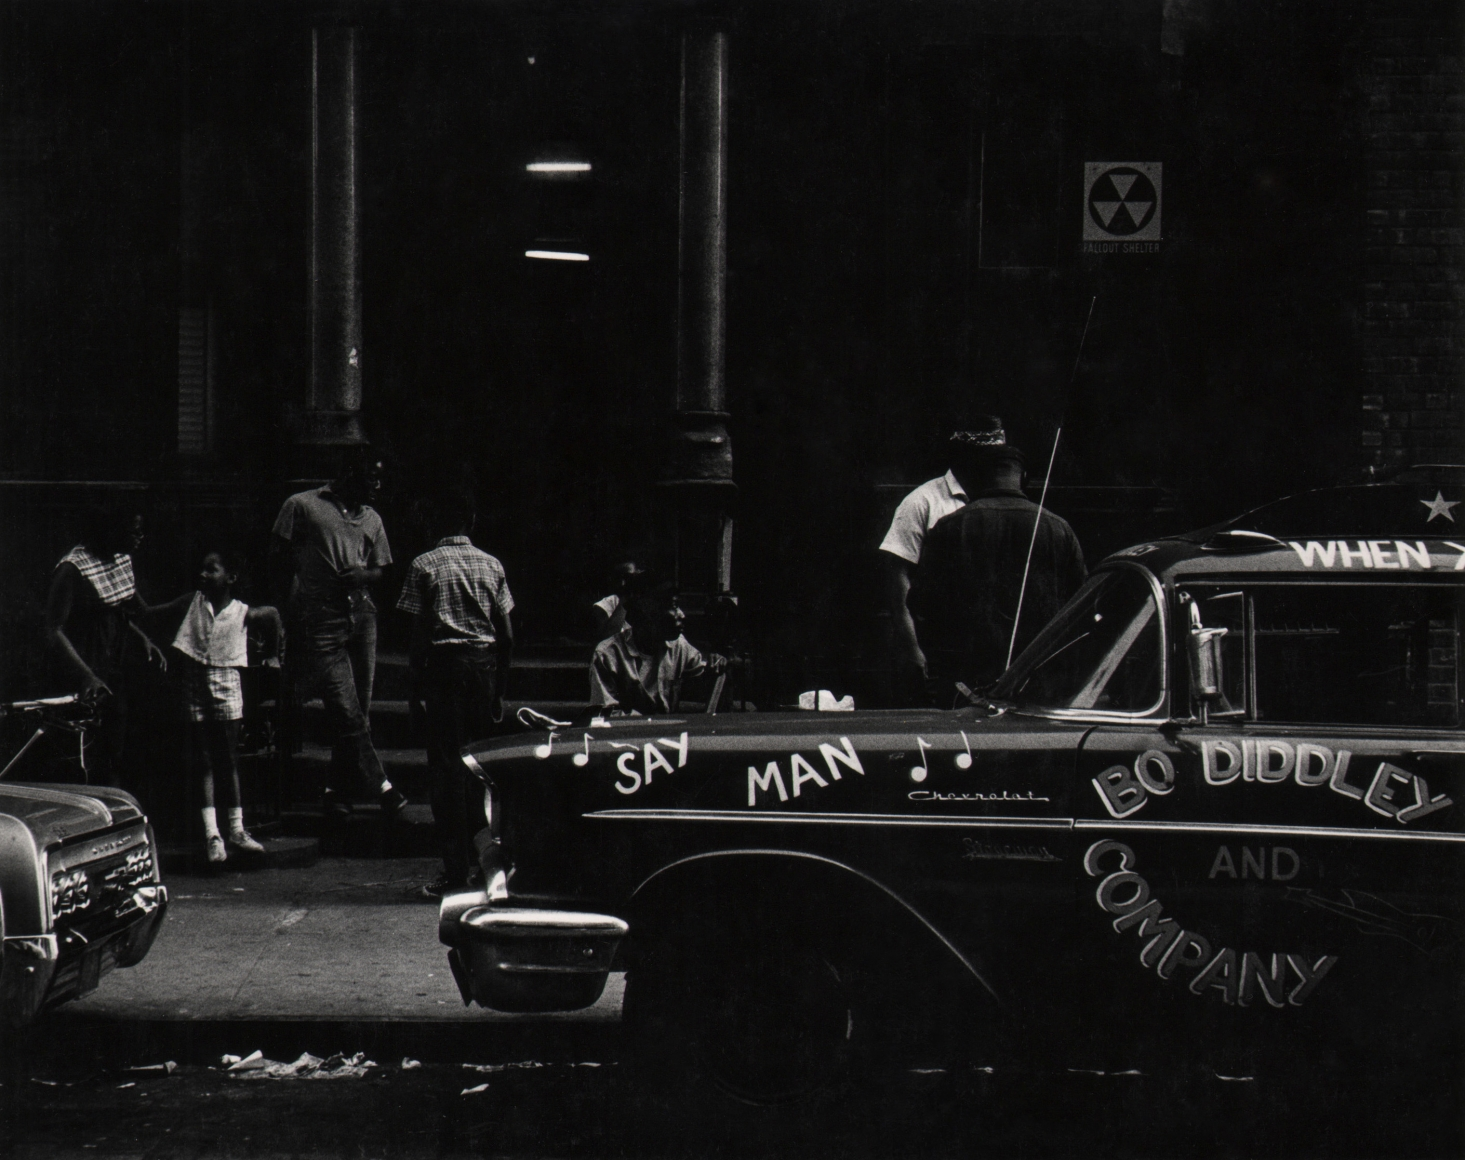 """30. Beuford Smith, Say Man, Harlem, 1969. A car parked on the street that reads """"Say Man"""" and """"Bo Diddley and Company"""". Figures gathered on the sidewalk behind."""